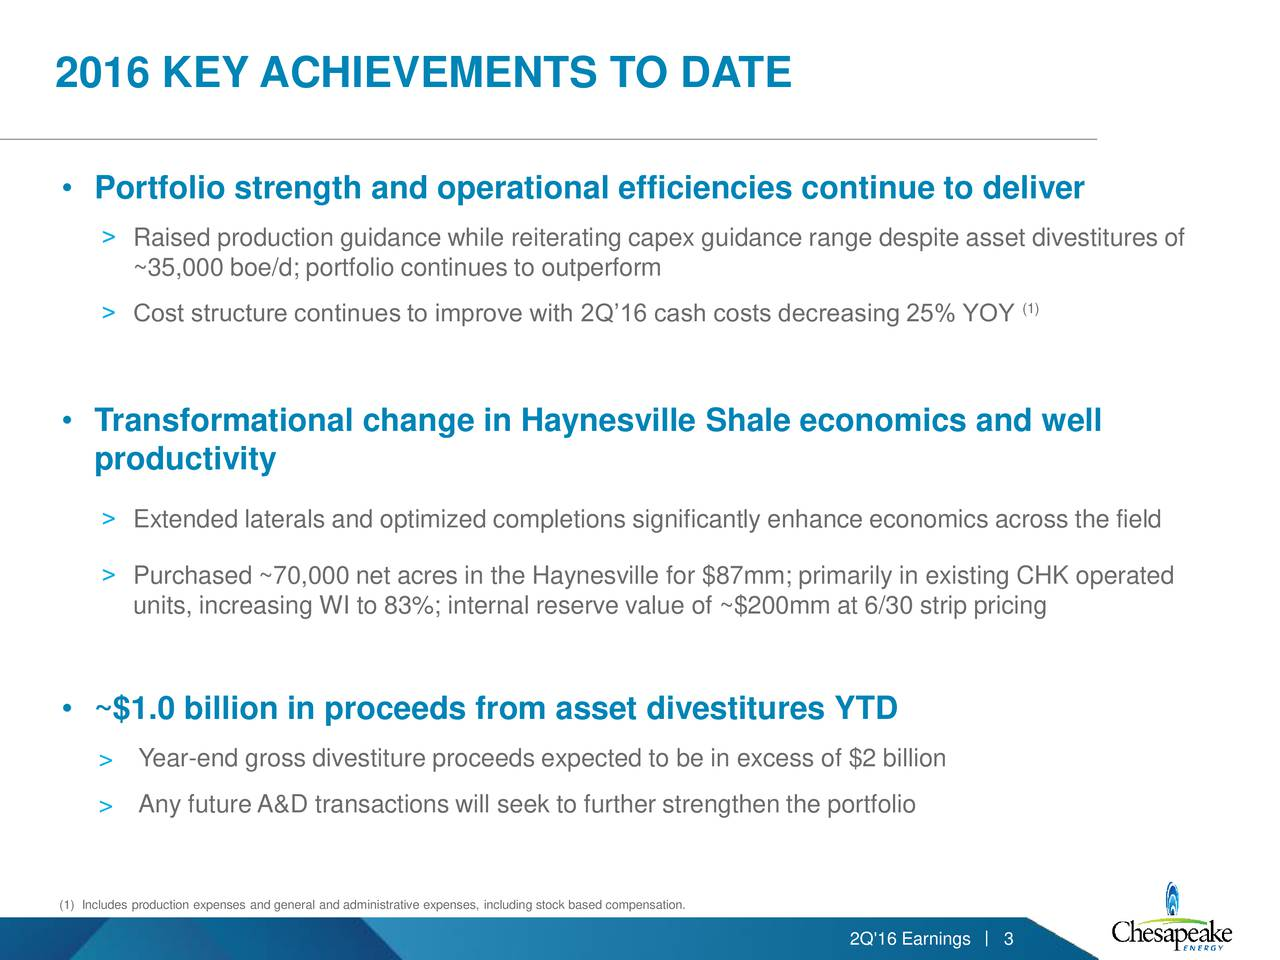 Portfolio strength and operational efficiencies continue to deliver Raised production guidance while reiterating capex guidance range despite asset divestitures of ~35,000 boe/d; portfolio continues to outperform (1) Cost structure continues to improve with 2Q16 cash costs decreasing 25% YOY Transformational change in Haynesville Shale economics and well productivity Extended laterals and optimized completions significantly enhance economics across the field Purchased ~70,000 net acres in the Haynesville for $87mm; primarily in existing CHK operated units, increasing WI to 83%; internal reserve value of ~$200mm at 6/30 strip pricing ~$1.0 billion in proceeds from asset divestitures YTD > Year-end gross divestiture proceeds expected to be in excess of $2 billion > Any futureA&D transactions will seek to further strengthen the portfolio (1) Includes production expenses and general and administrative expenses, including stock based compensation. 2Q'16 Earning3